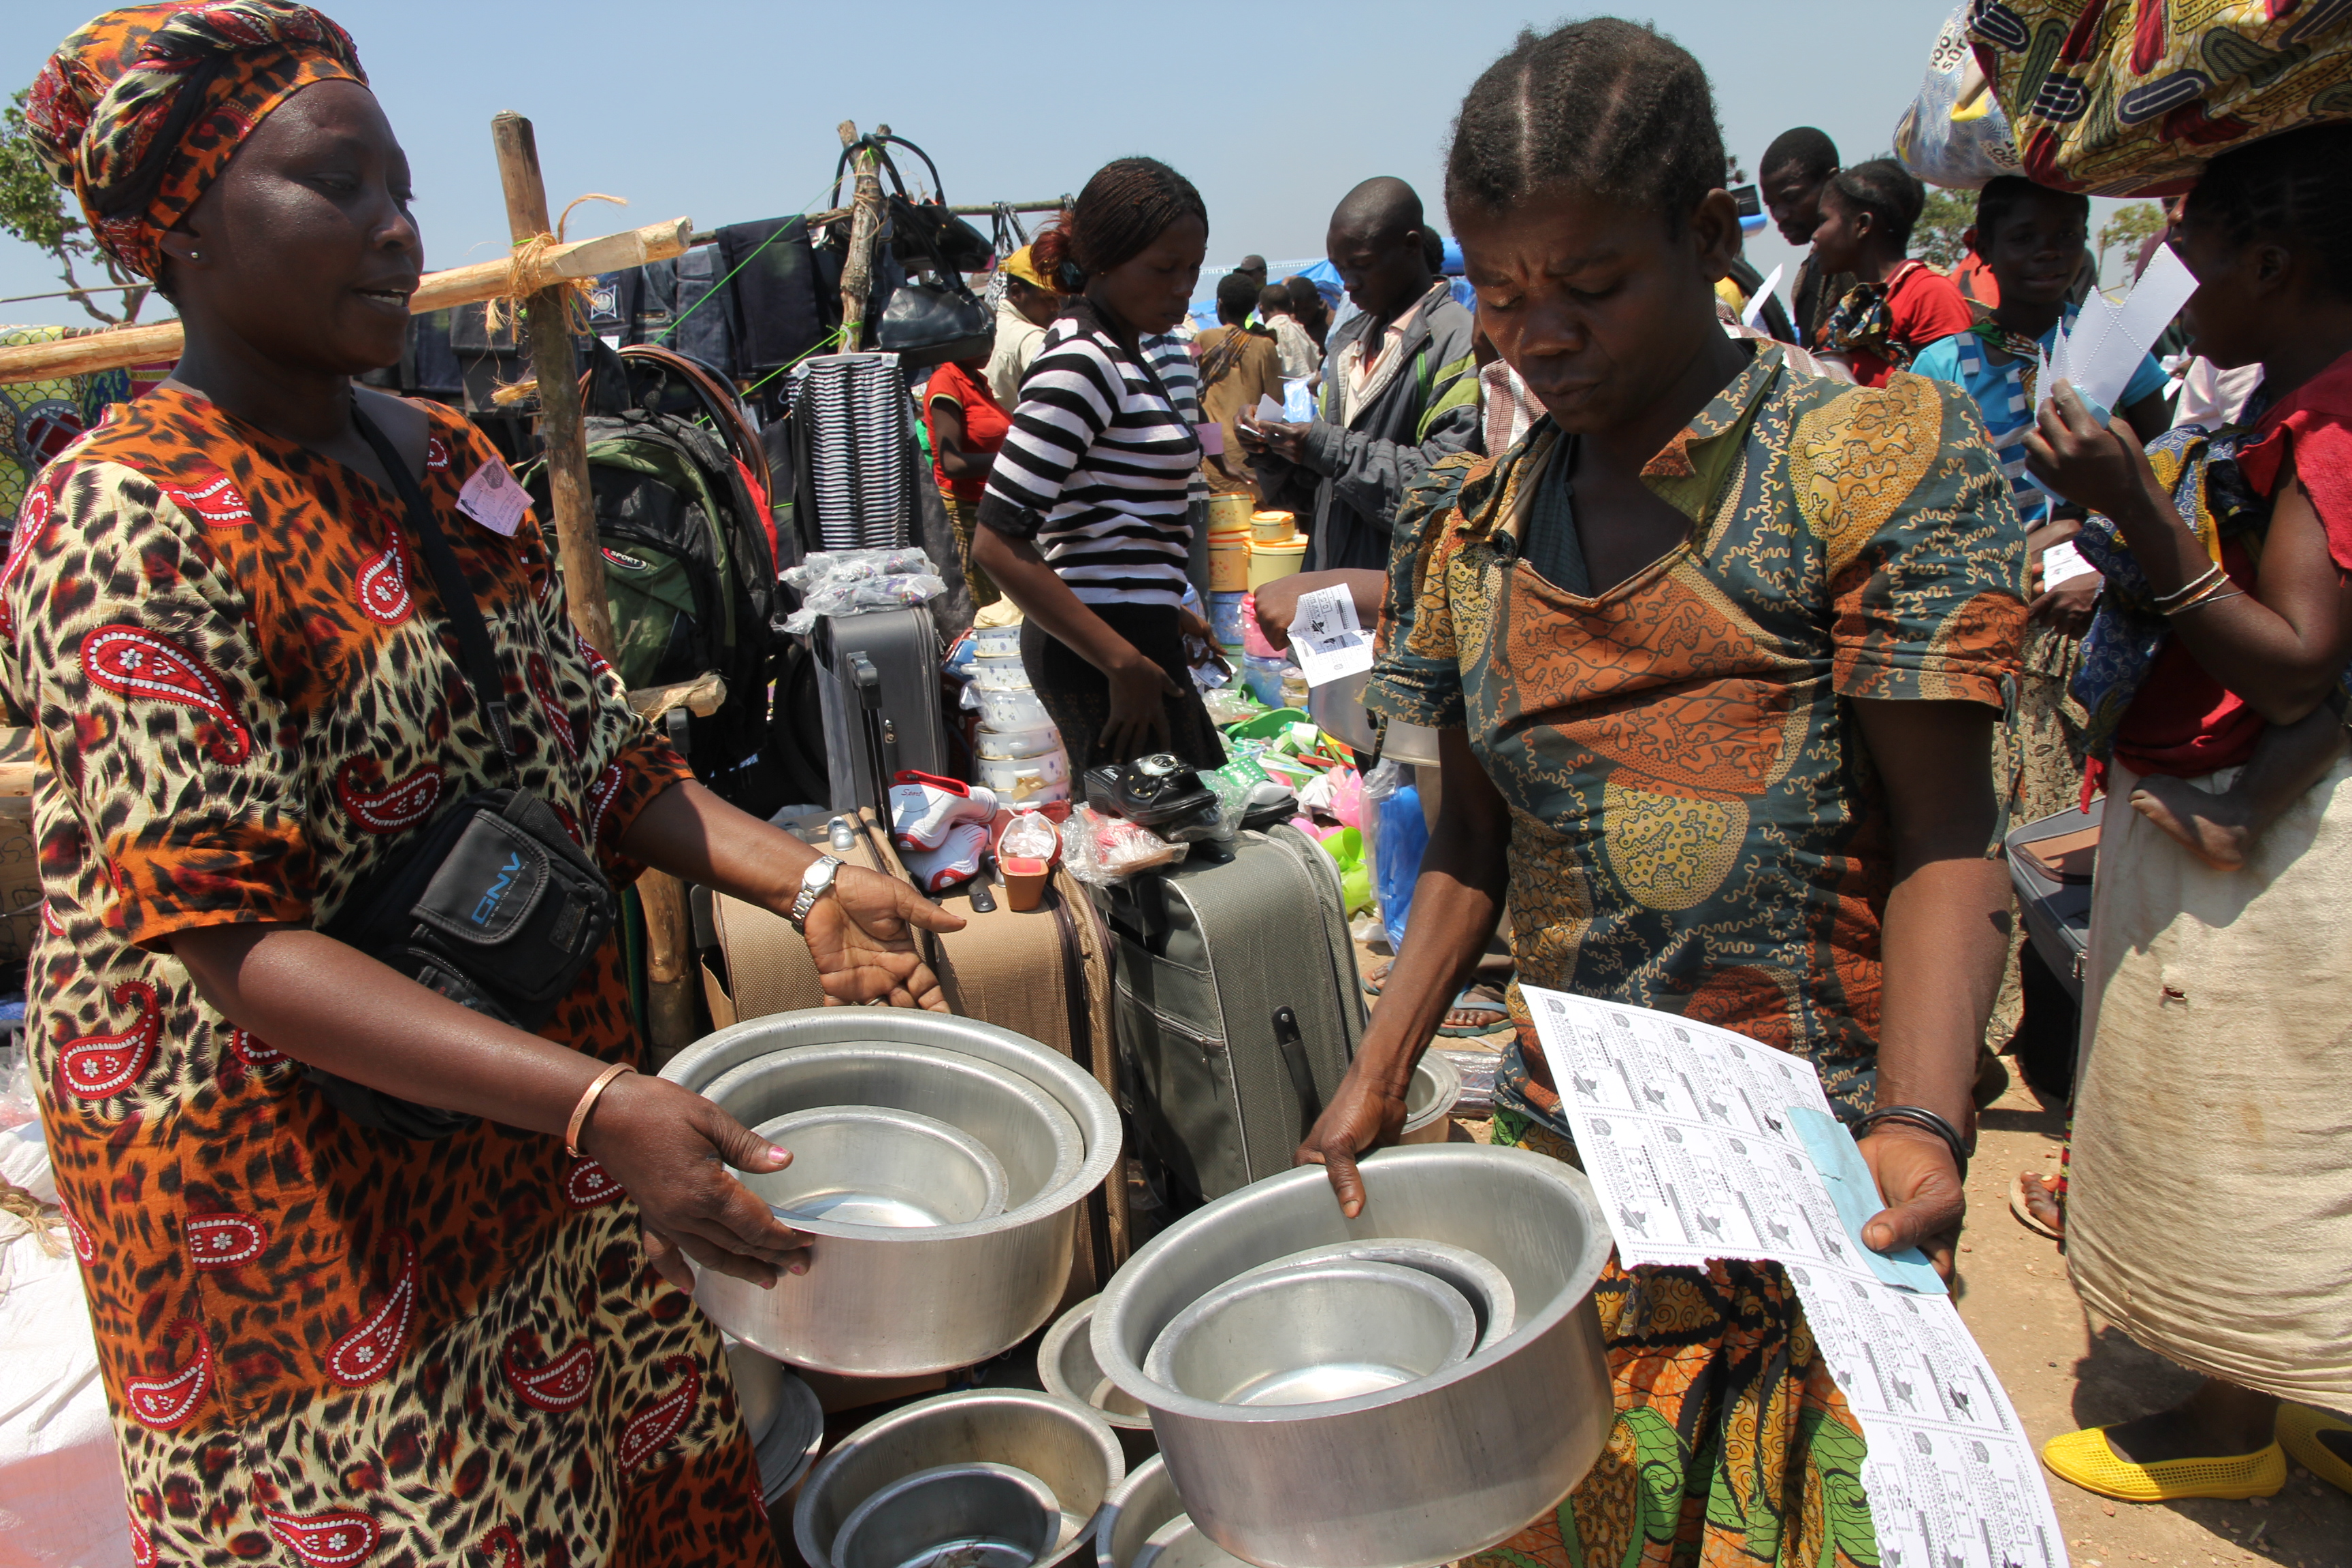 September 2013. Katanga, DRC. Jeanne Kaubwa presents a vendor with vouchers, part of an innovative 'IDP fair' system for distributing goods to displaced families in Kambilo camp.